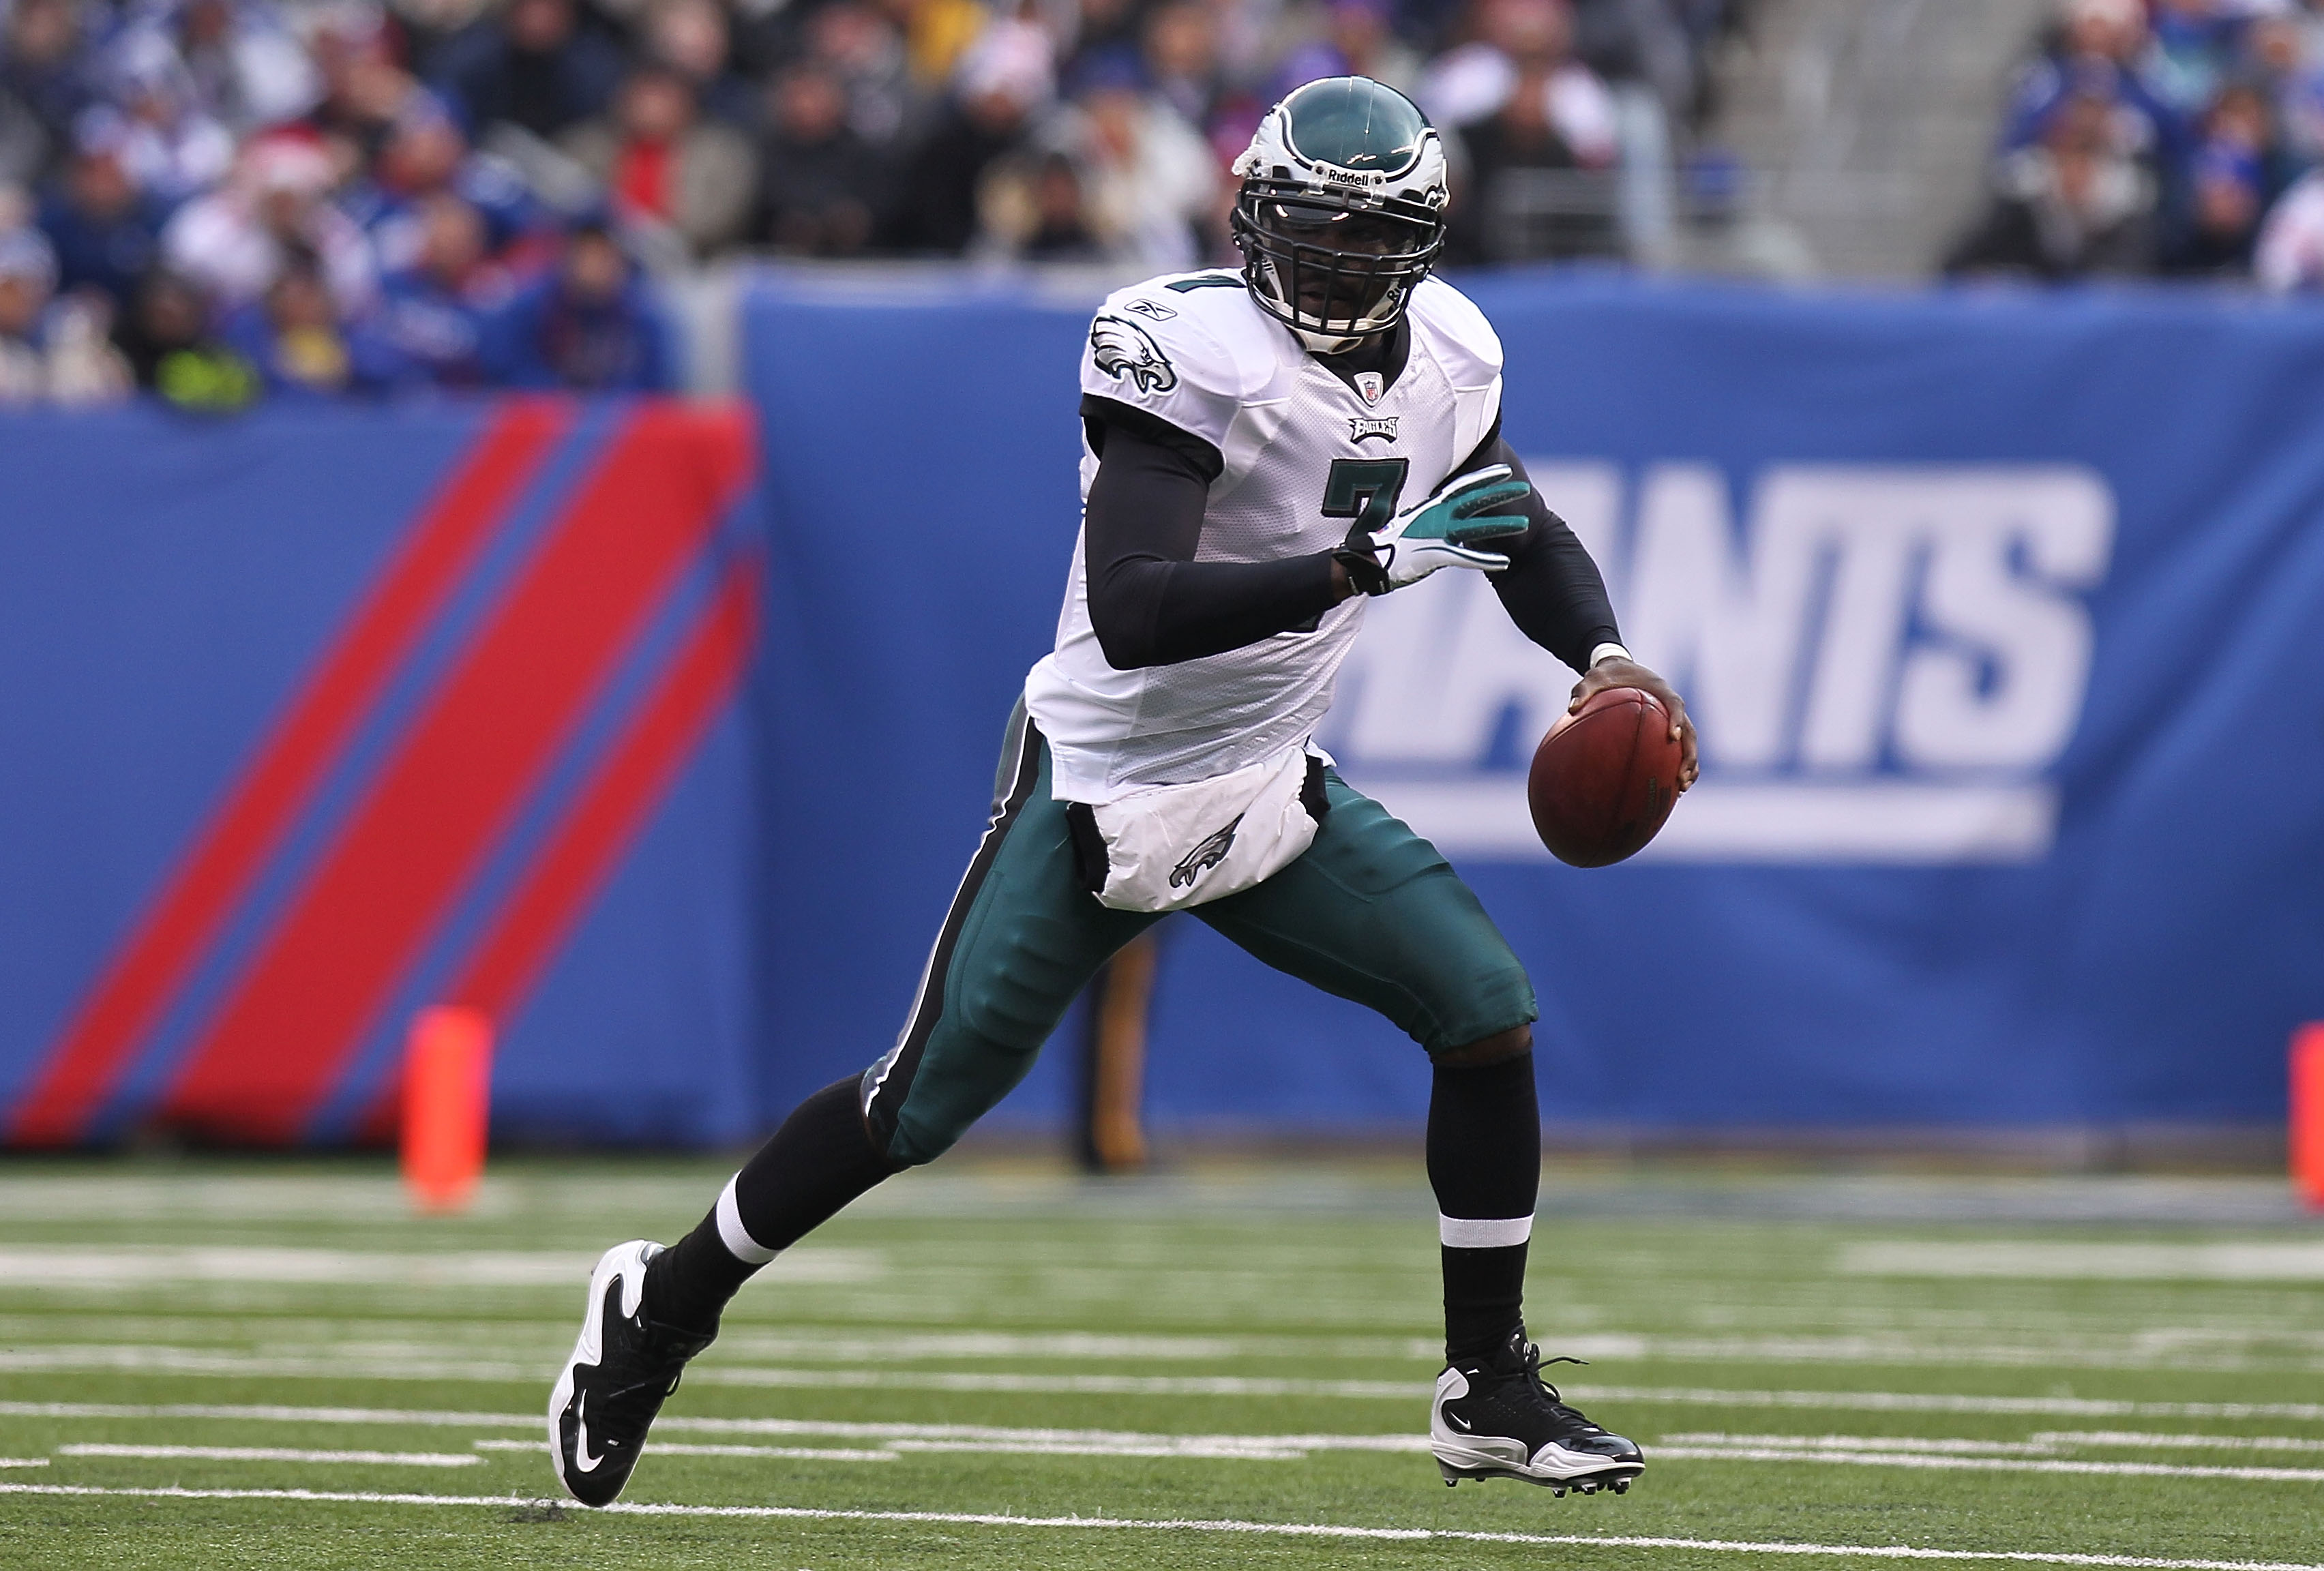 EAST RUTHERFORD, NJ - DECEMBER 19:  Michael Vick #7 of the Philadelphia Eagles rushes against the New York Giants at New Meadowlands Stadium on December 19, 2010 in East Rutherford, New Jersey.  (Photo by Nick Laham/Getty Images)